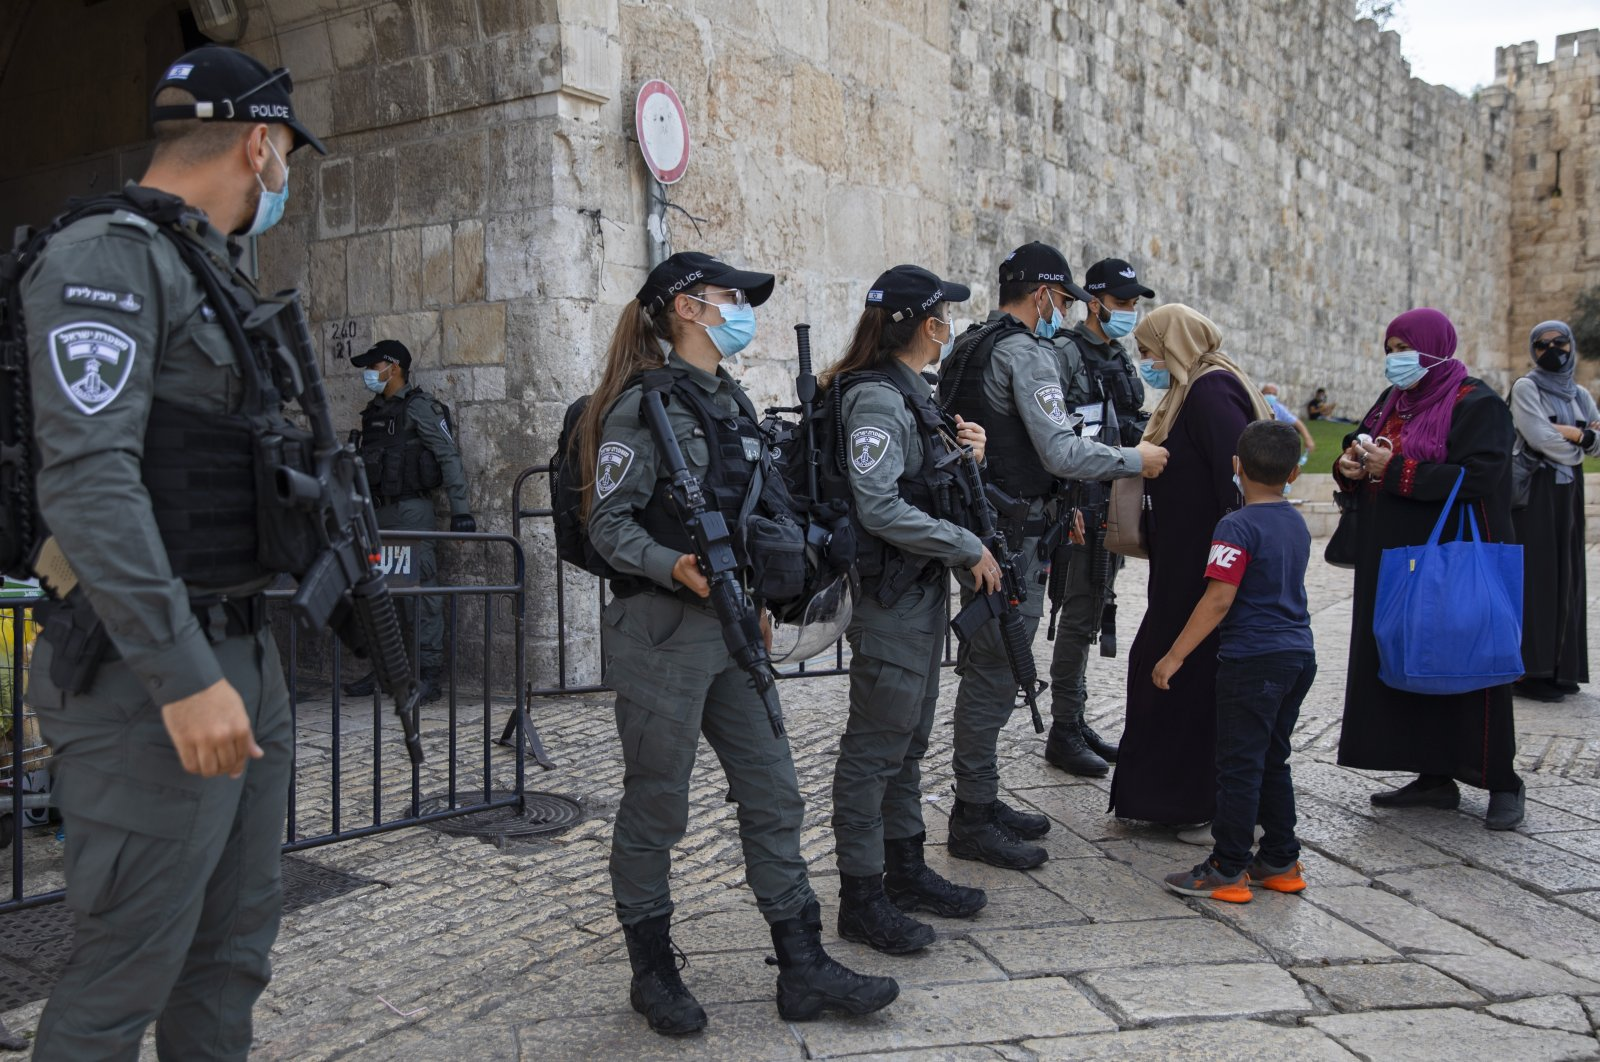 Israeli border police officers check identification cards of Palestinians as they make their way to the Al Aqsa Mosque compound to mark the birthday of the Prophet Mohammed, in Jerusalem's old city, Oct. 29, 2020. (AP Photo)